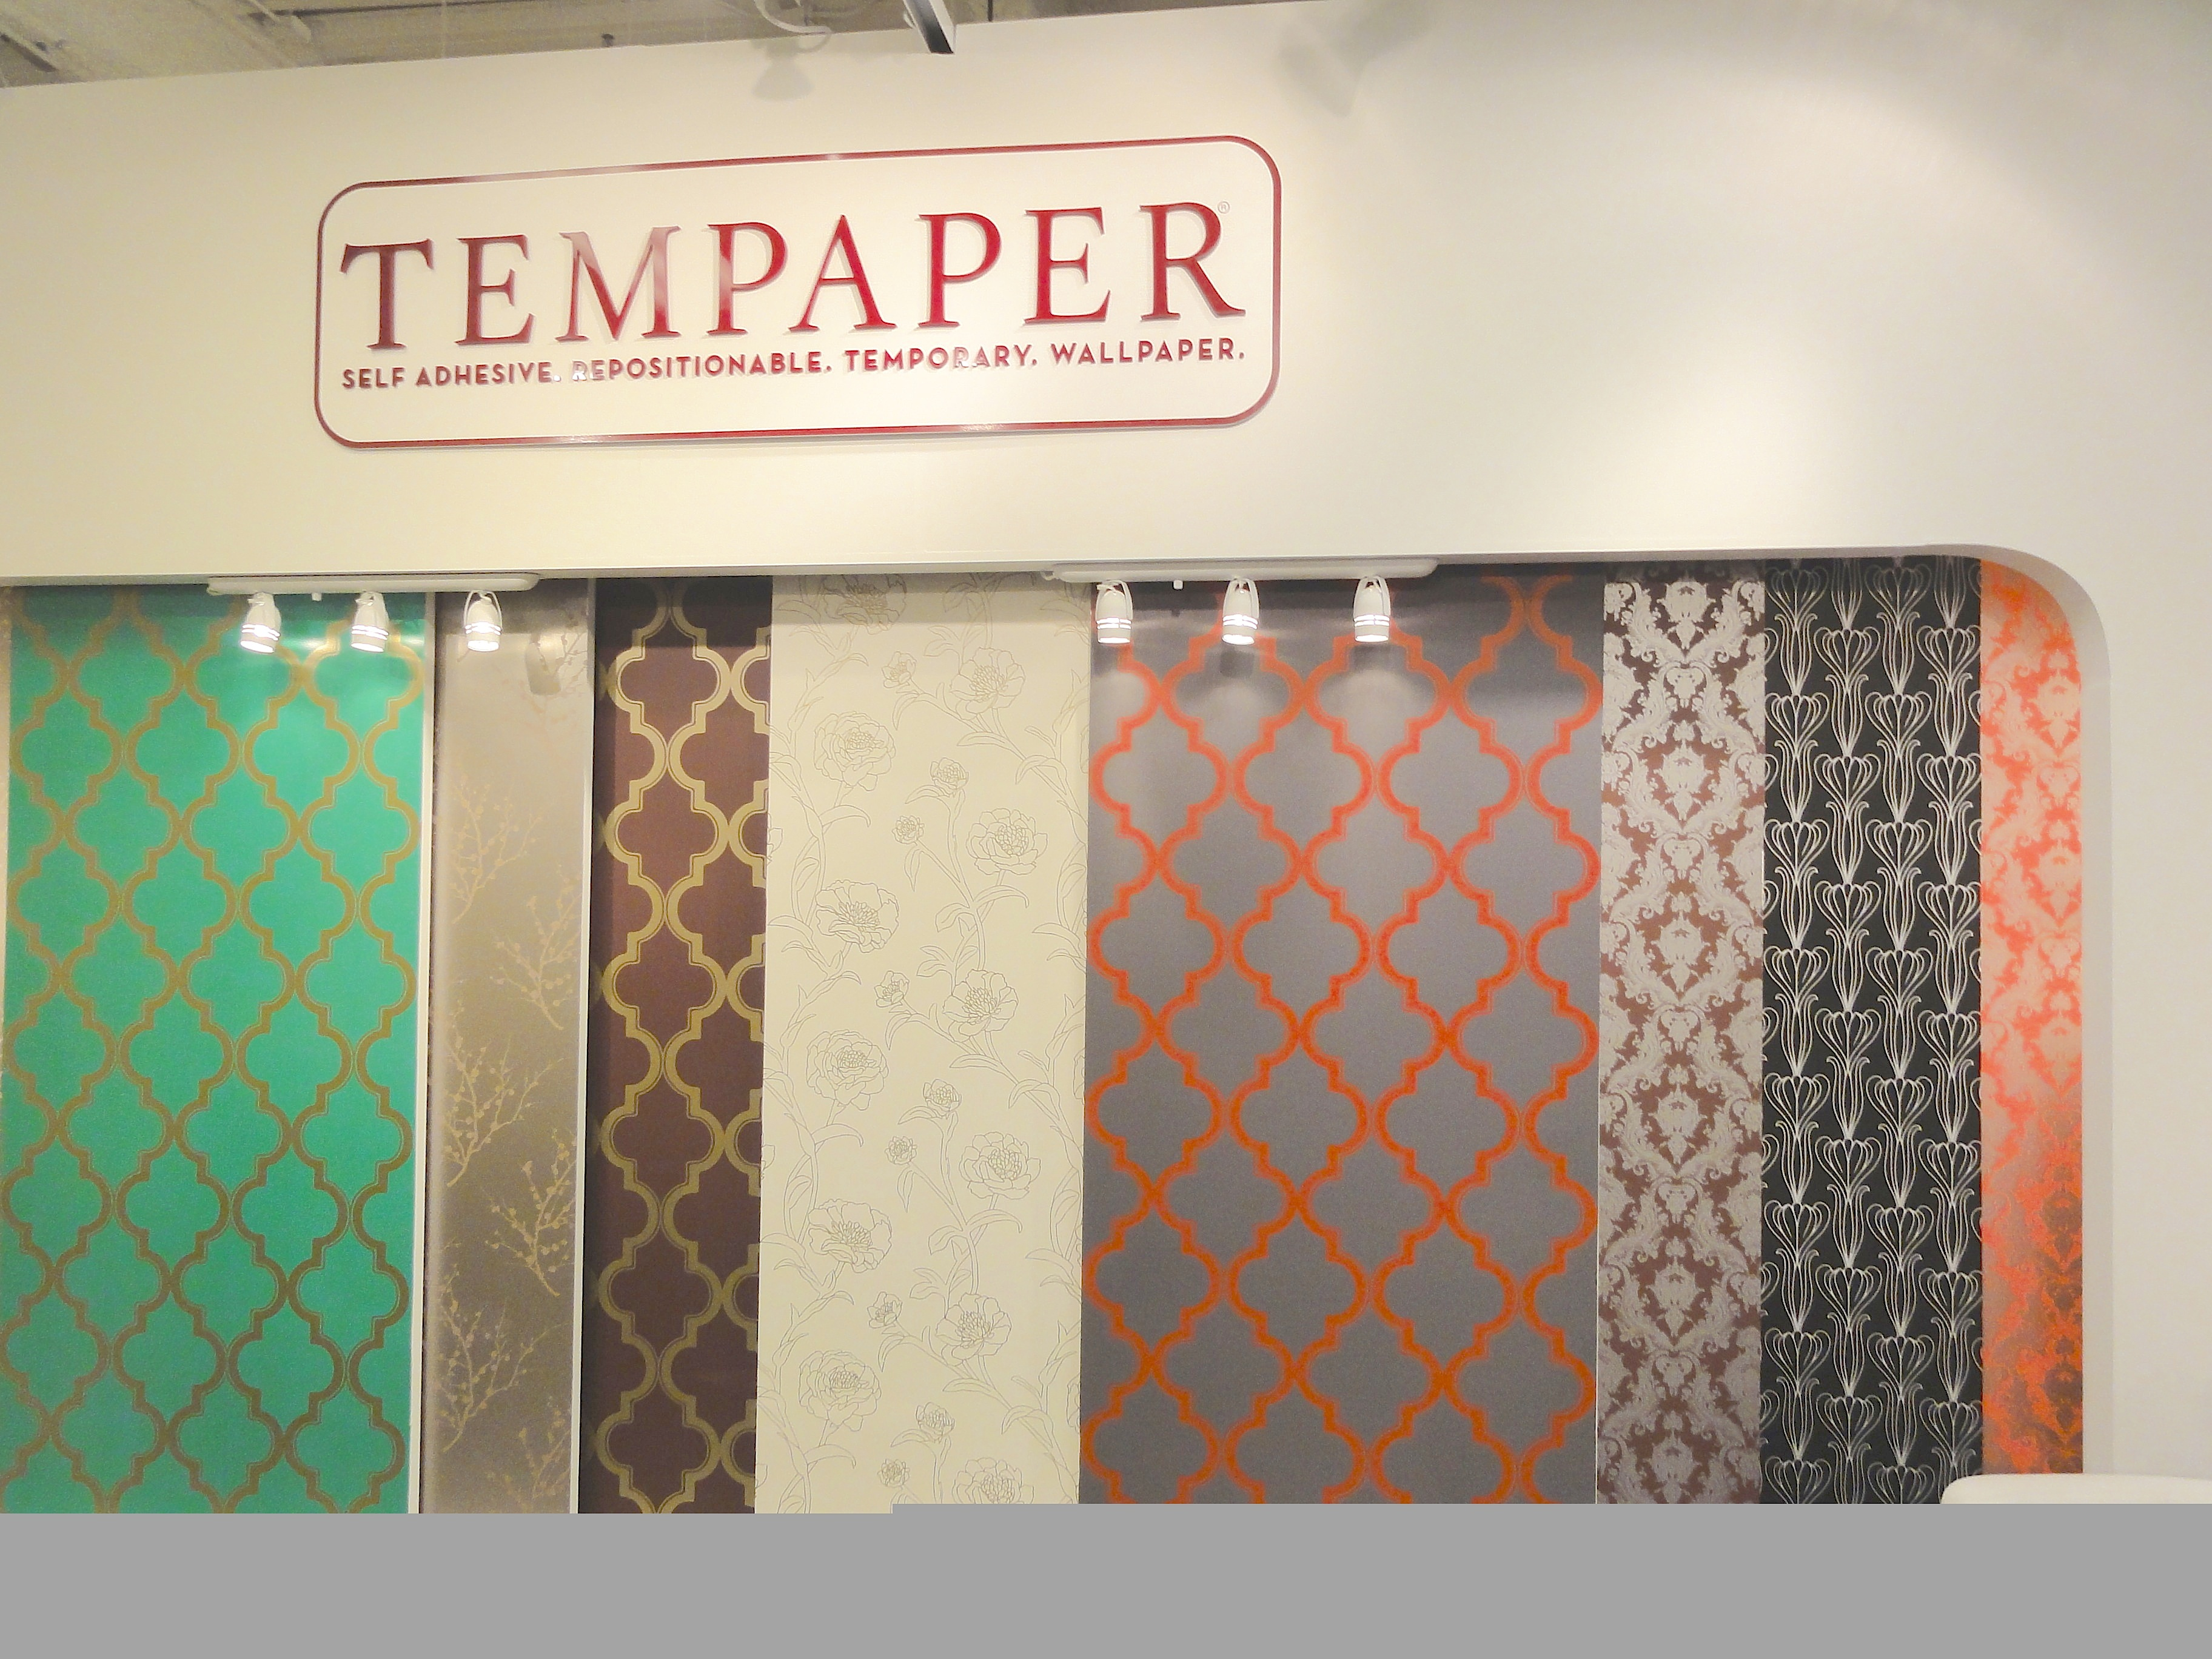 Where to Buy Temporary Wallpaper 3648x2736